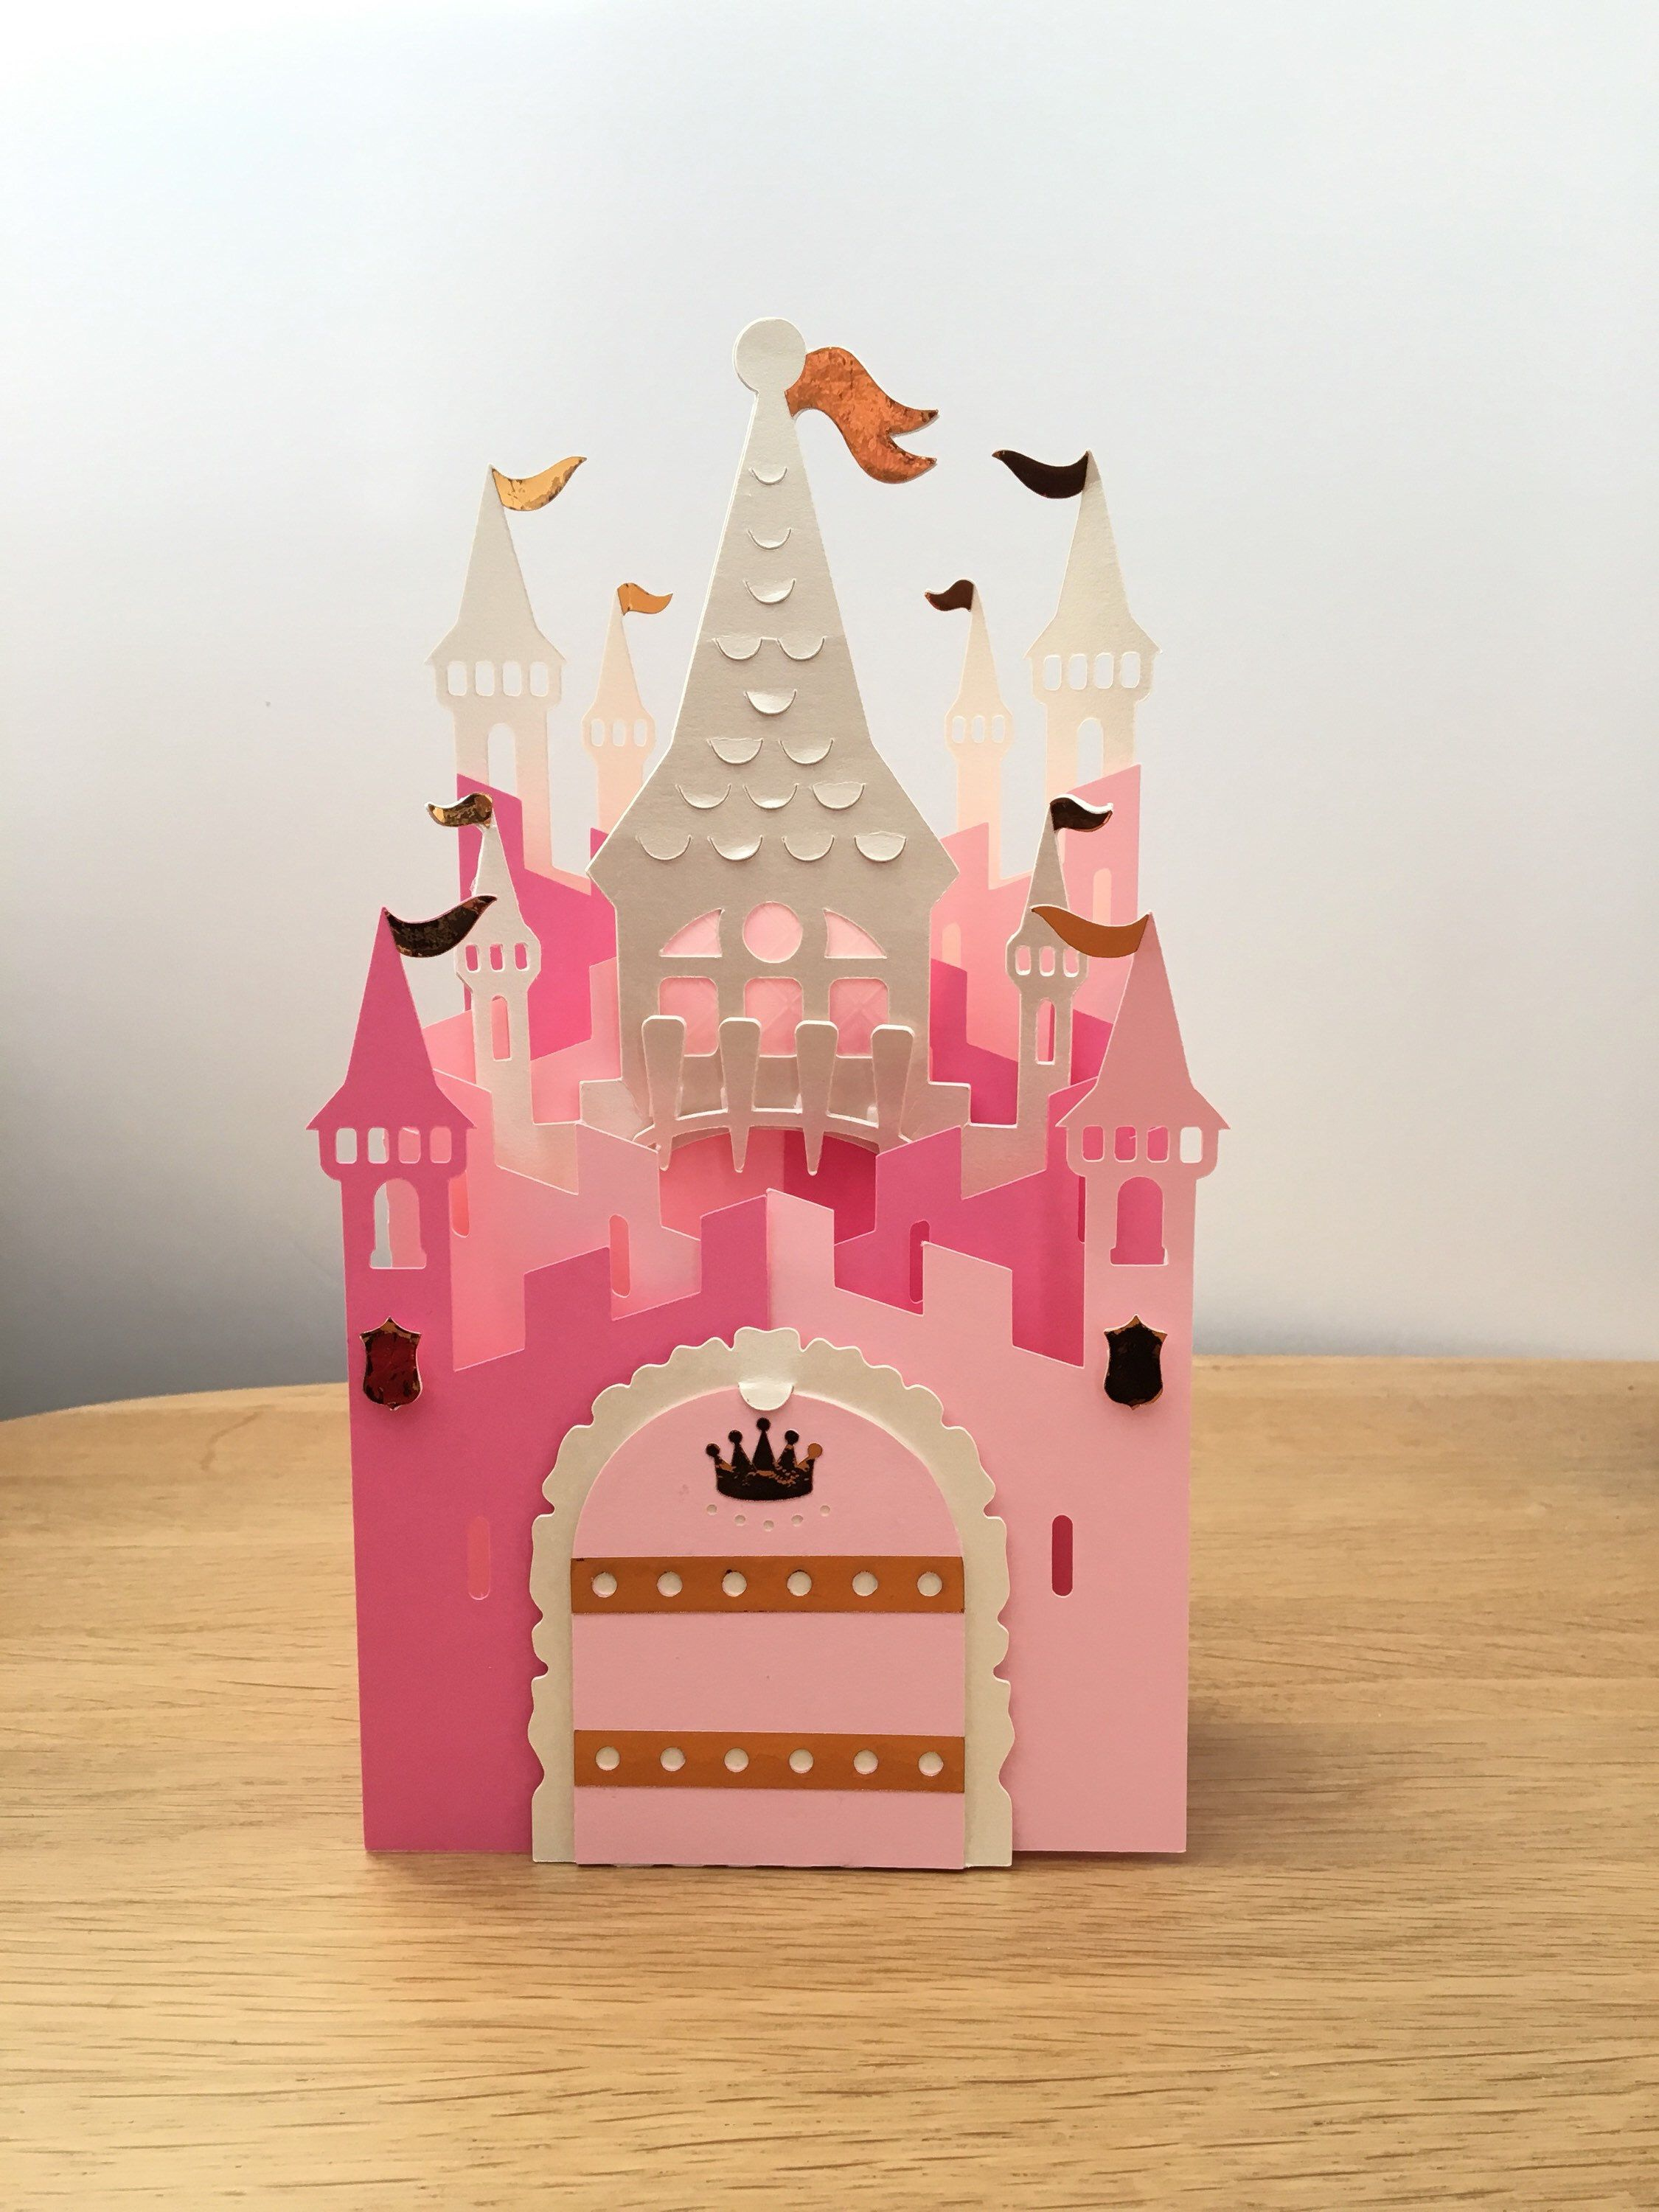 Pop Up Castle Card For Daughter Cascade Card For Special Etsy In 2020 Princess Card Handmade Birthday Cards Handmade Envelopes